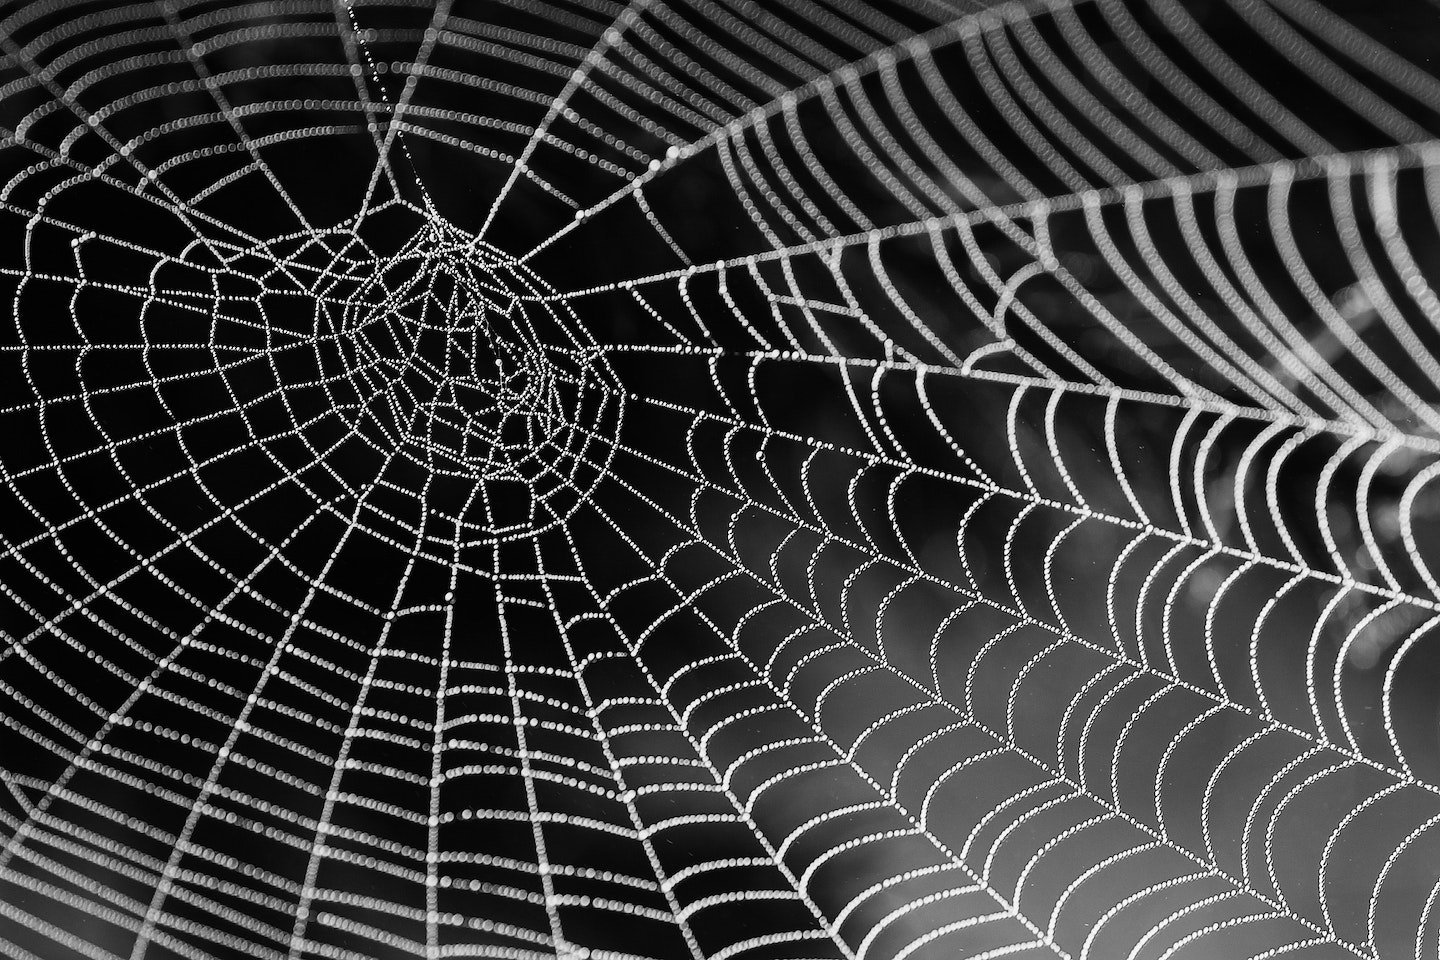 Black and white photo of a spider web with beads of moisture